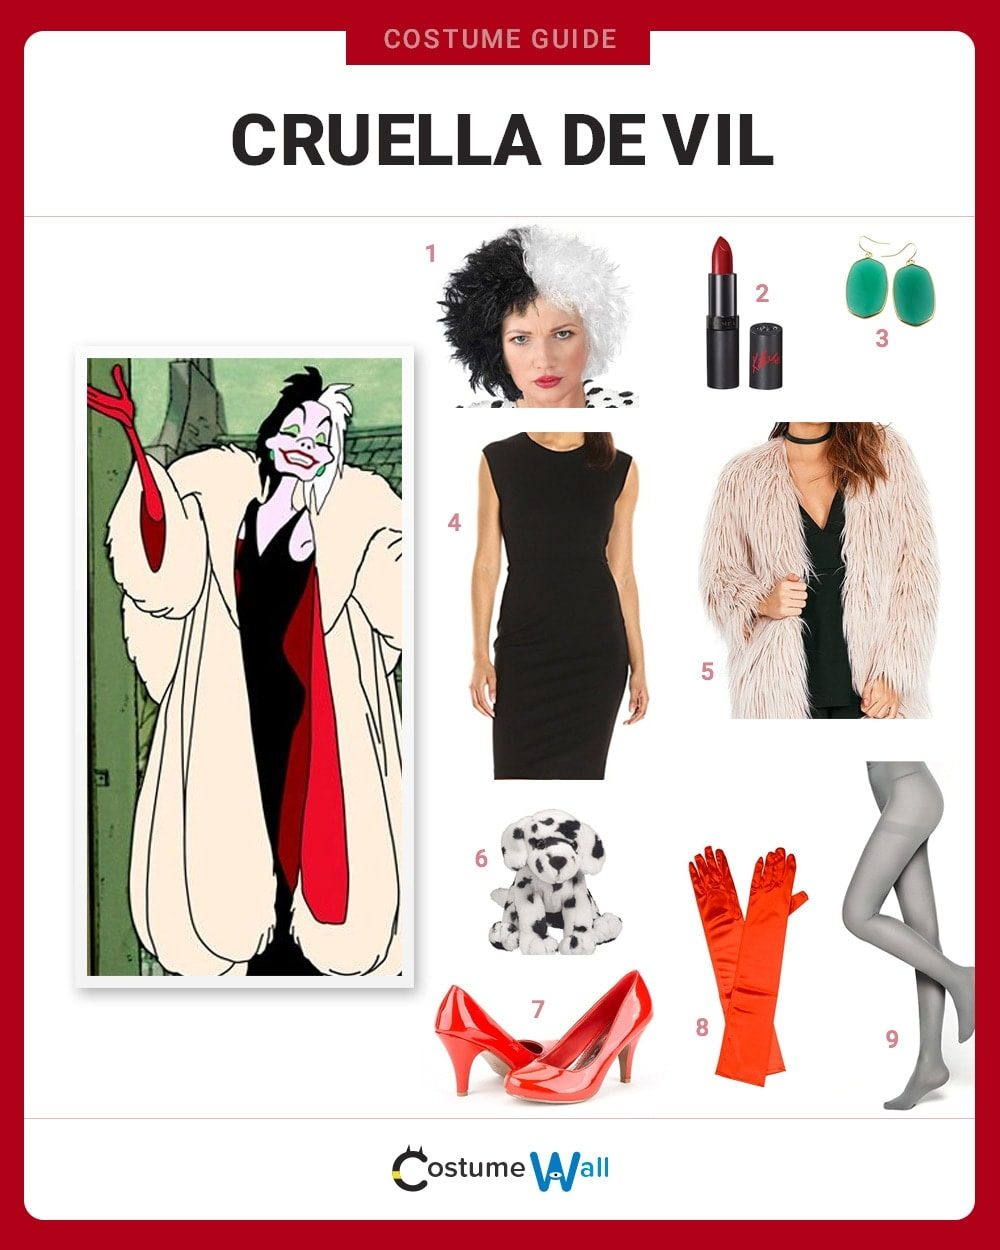 dress like cruella de vil costume halloween and cosplay guides